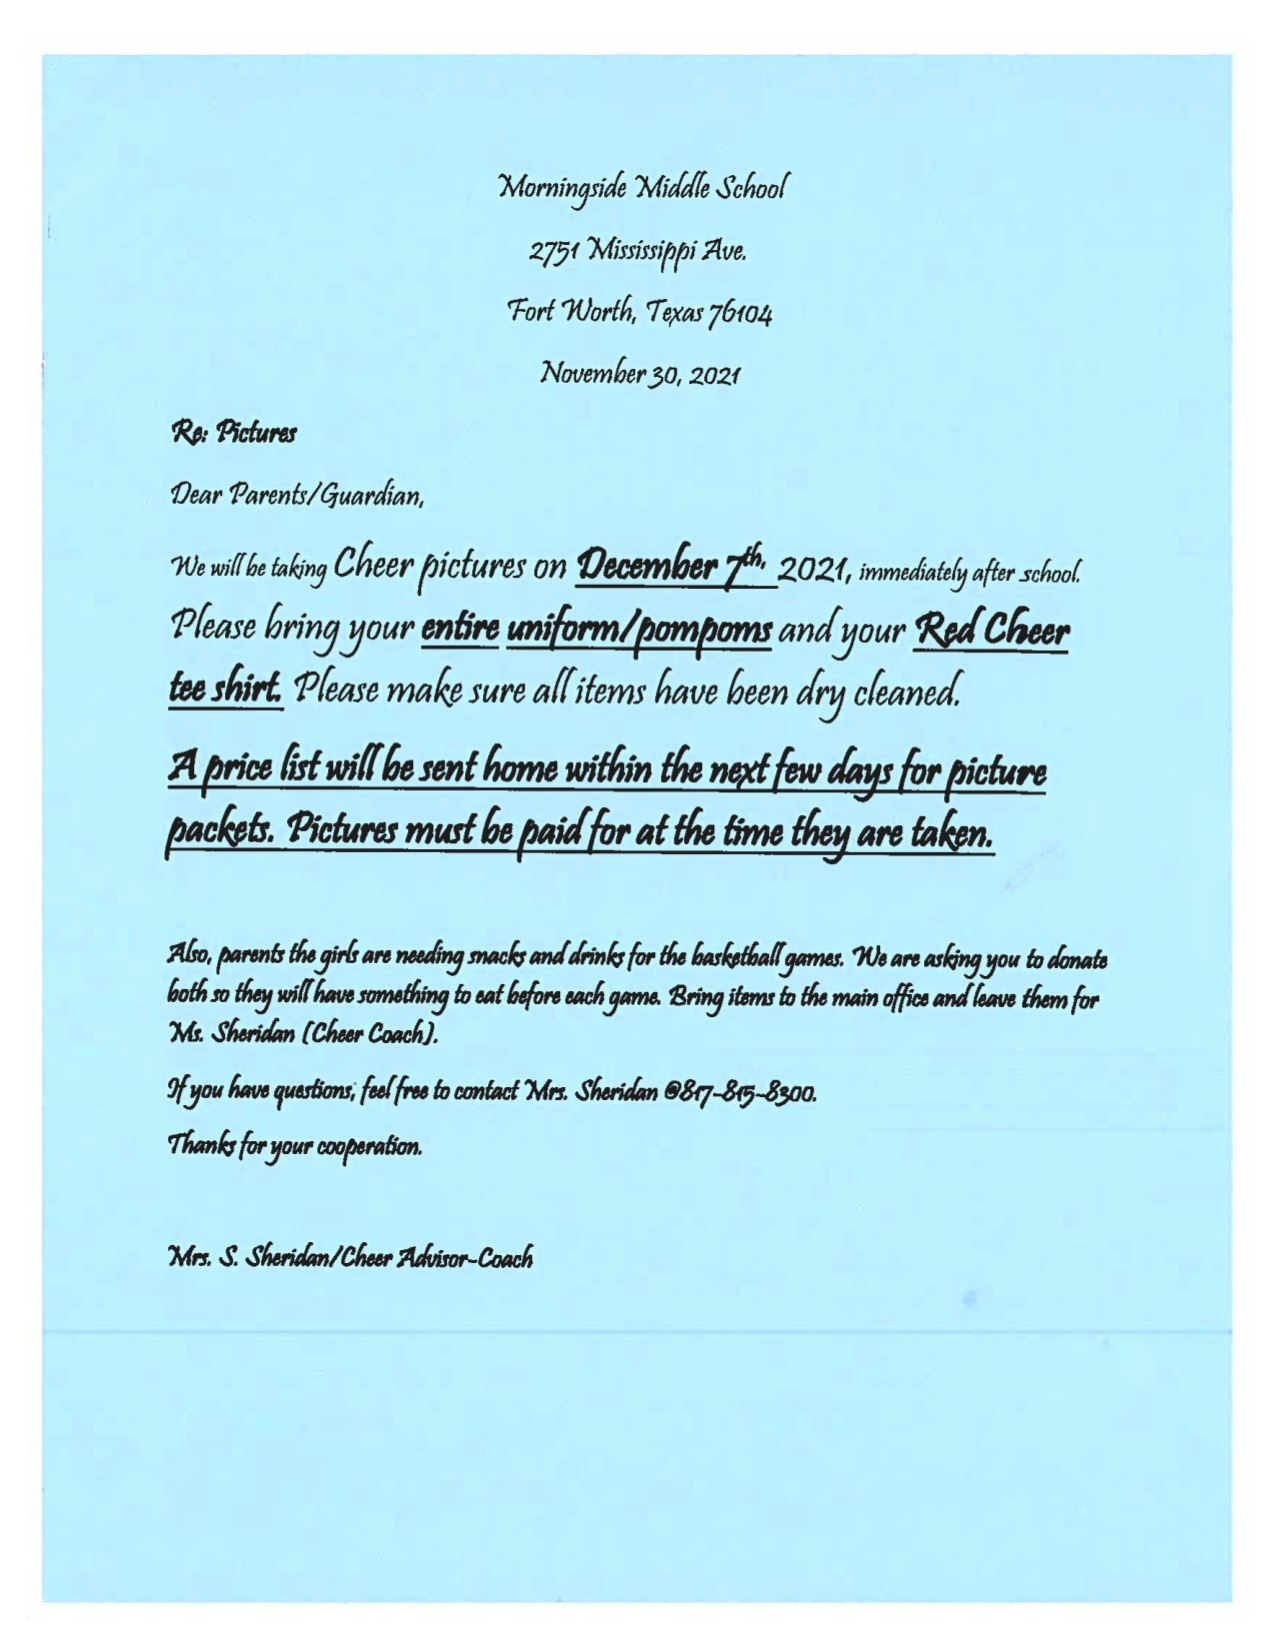 Morningside Cheerleaders Take 2nd Place at 7th Annual Cheer Competition